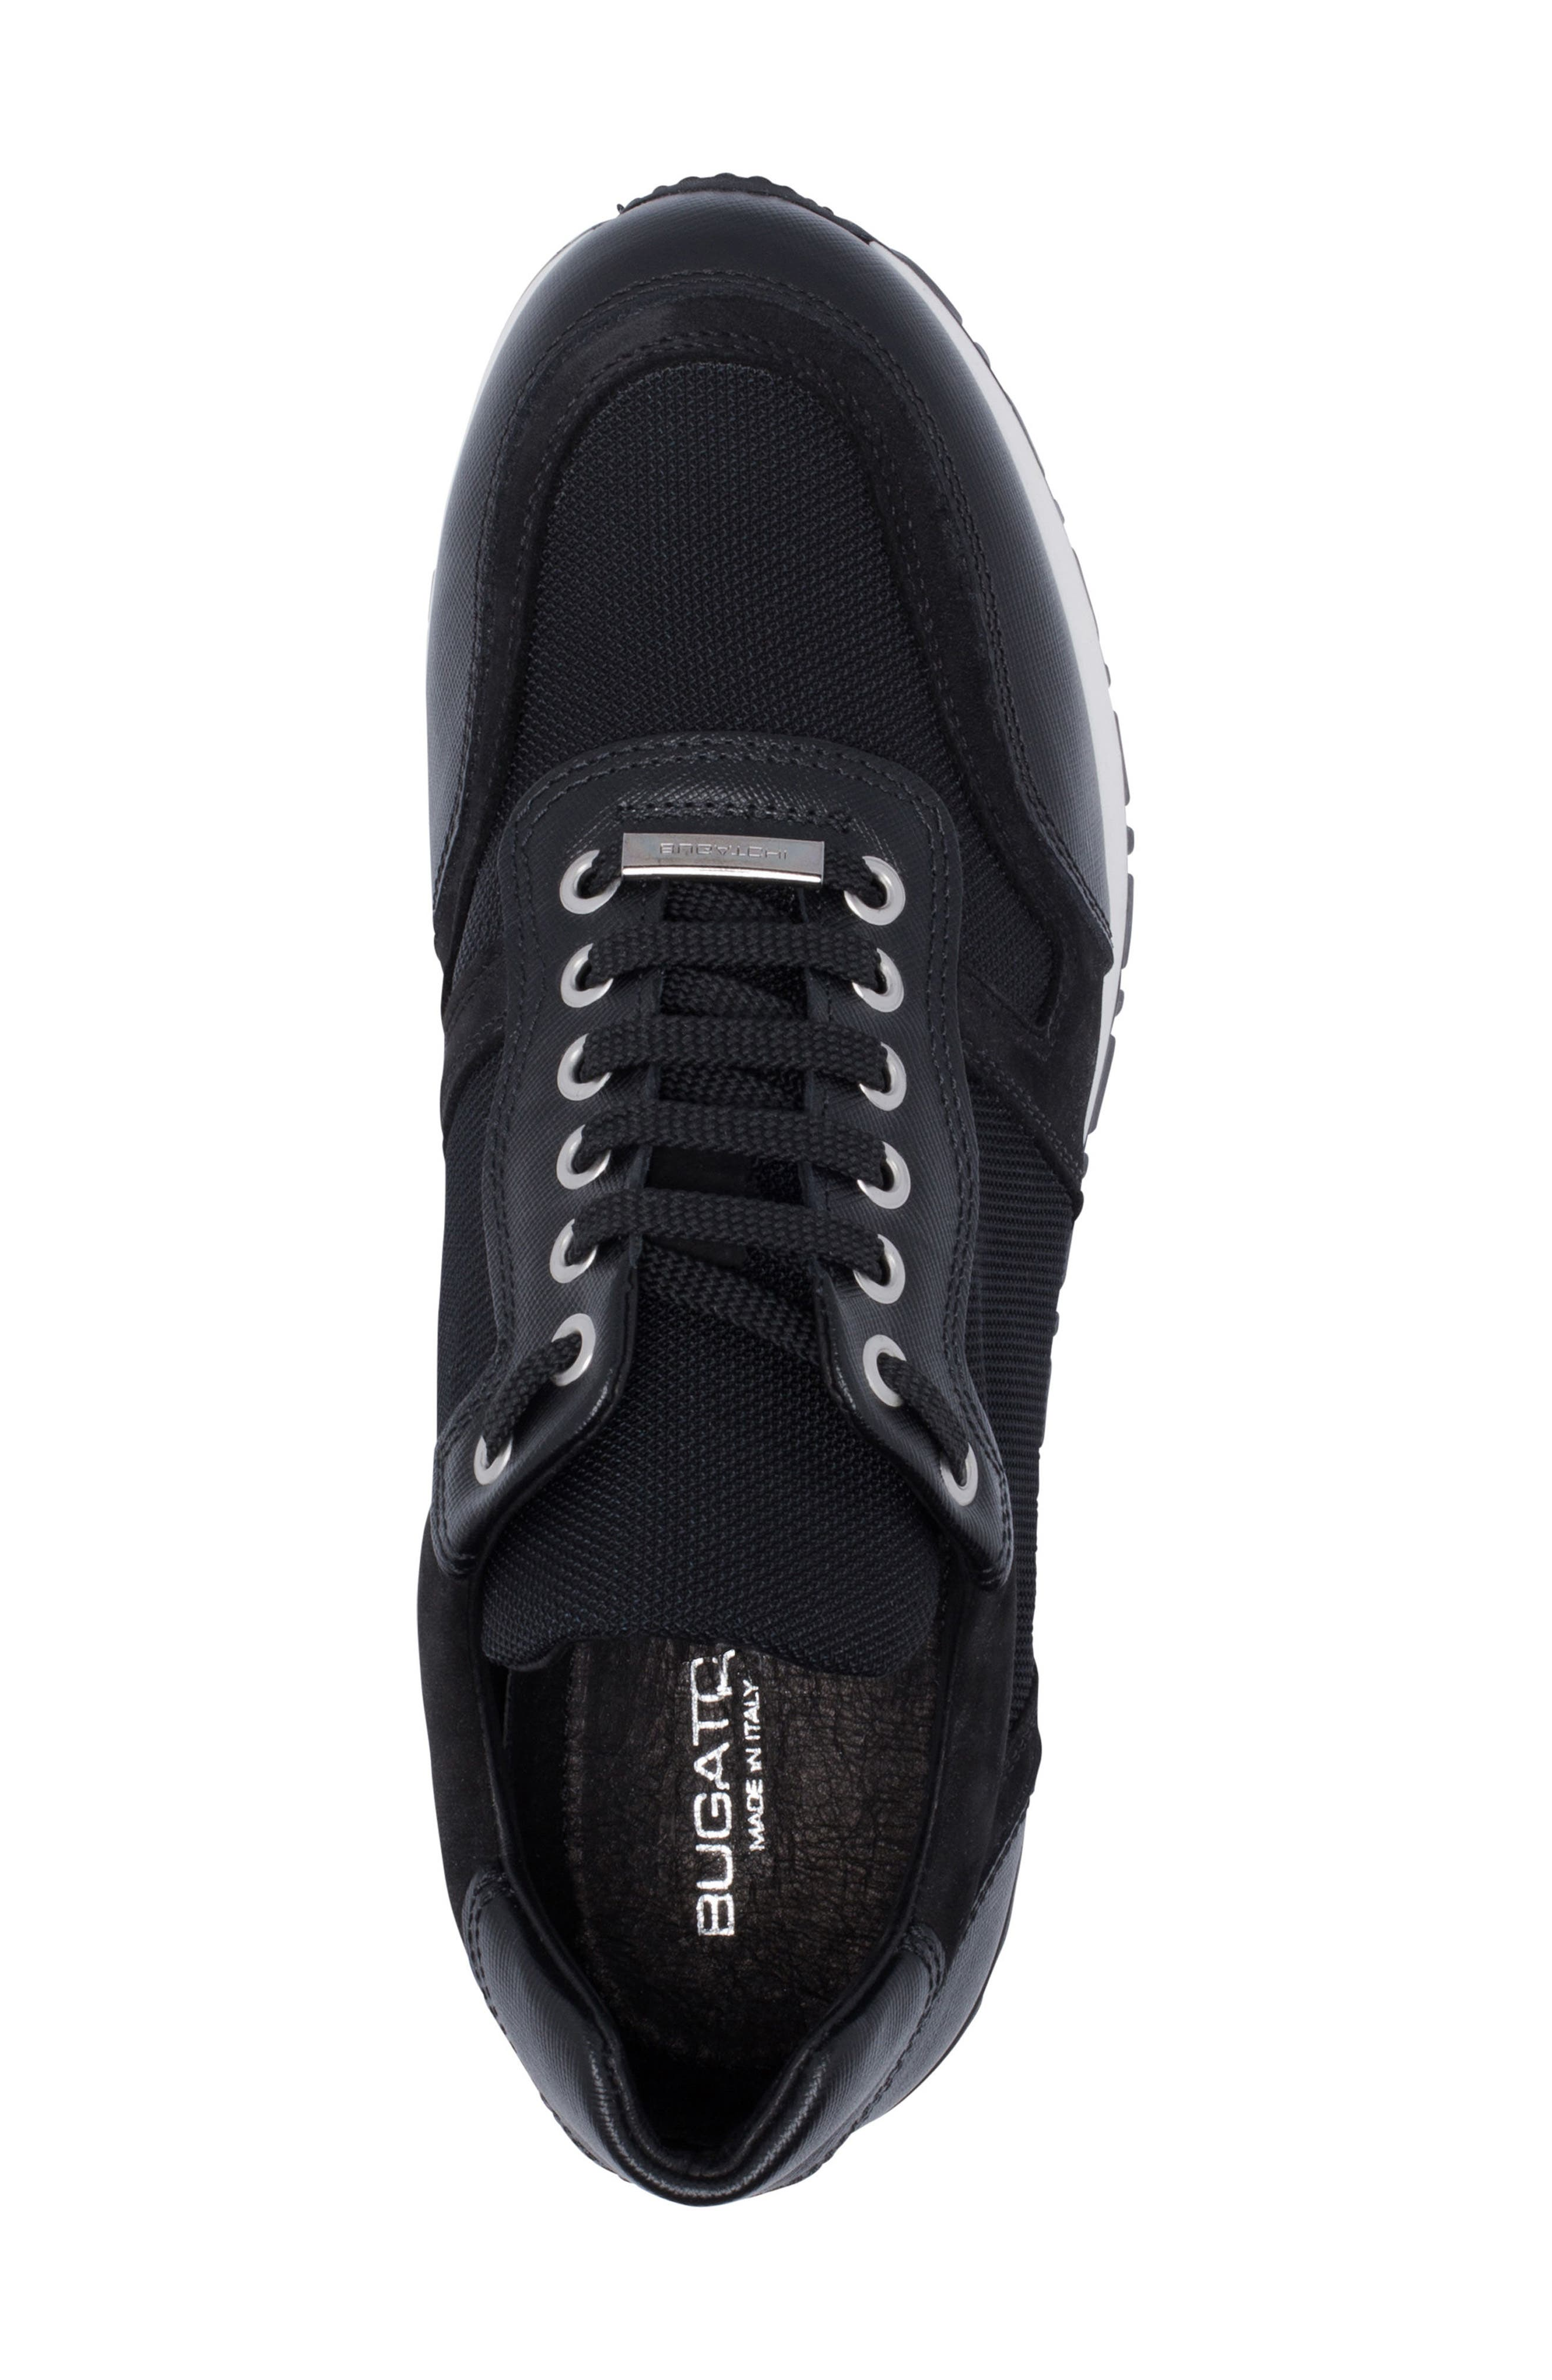 Modena Sneaker,                             Alternate thumbnail 5, color,                             NERO BLACK